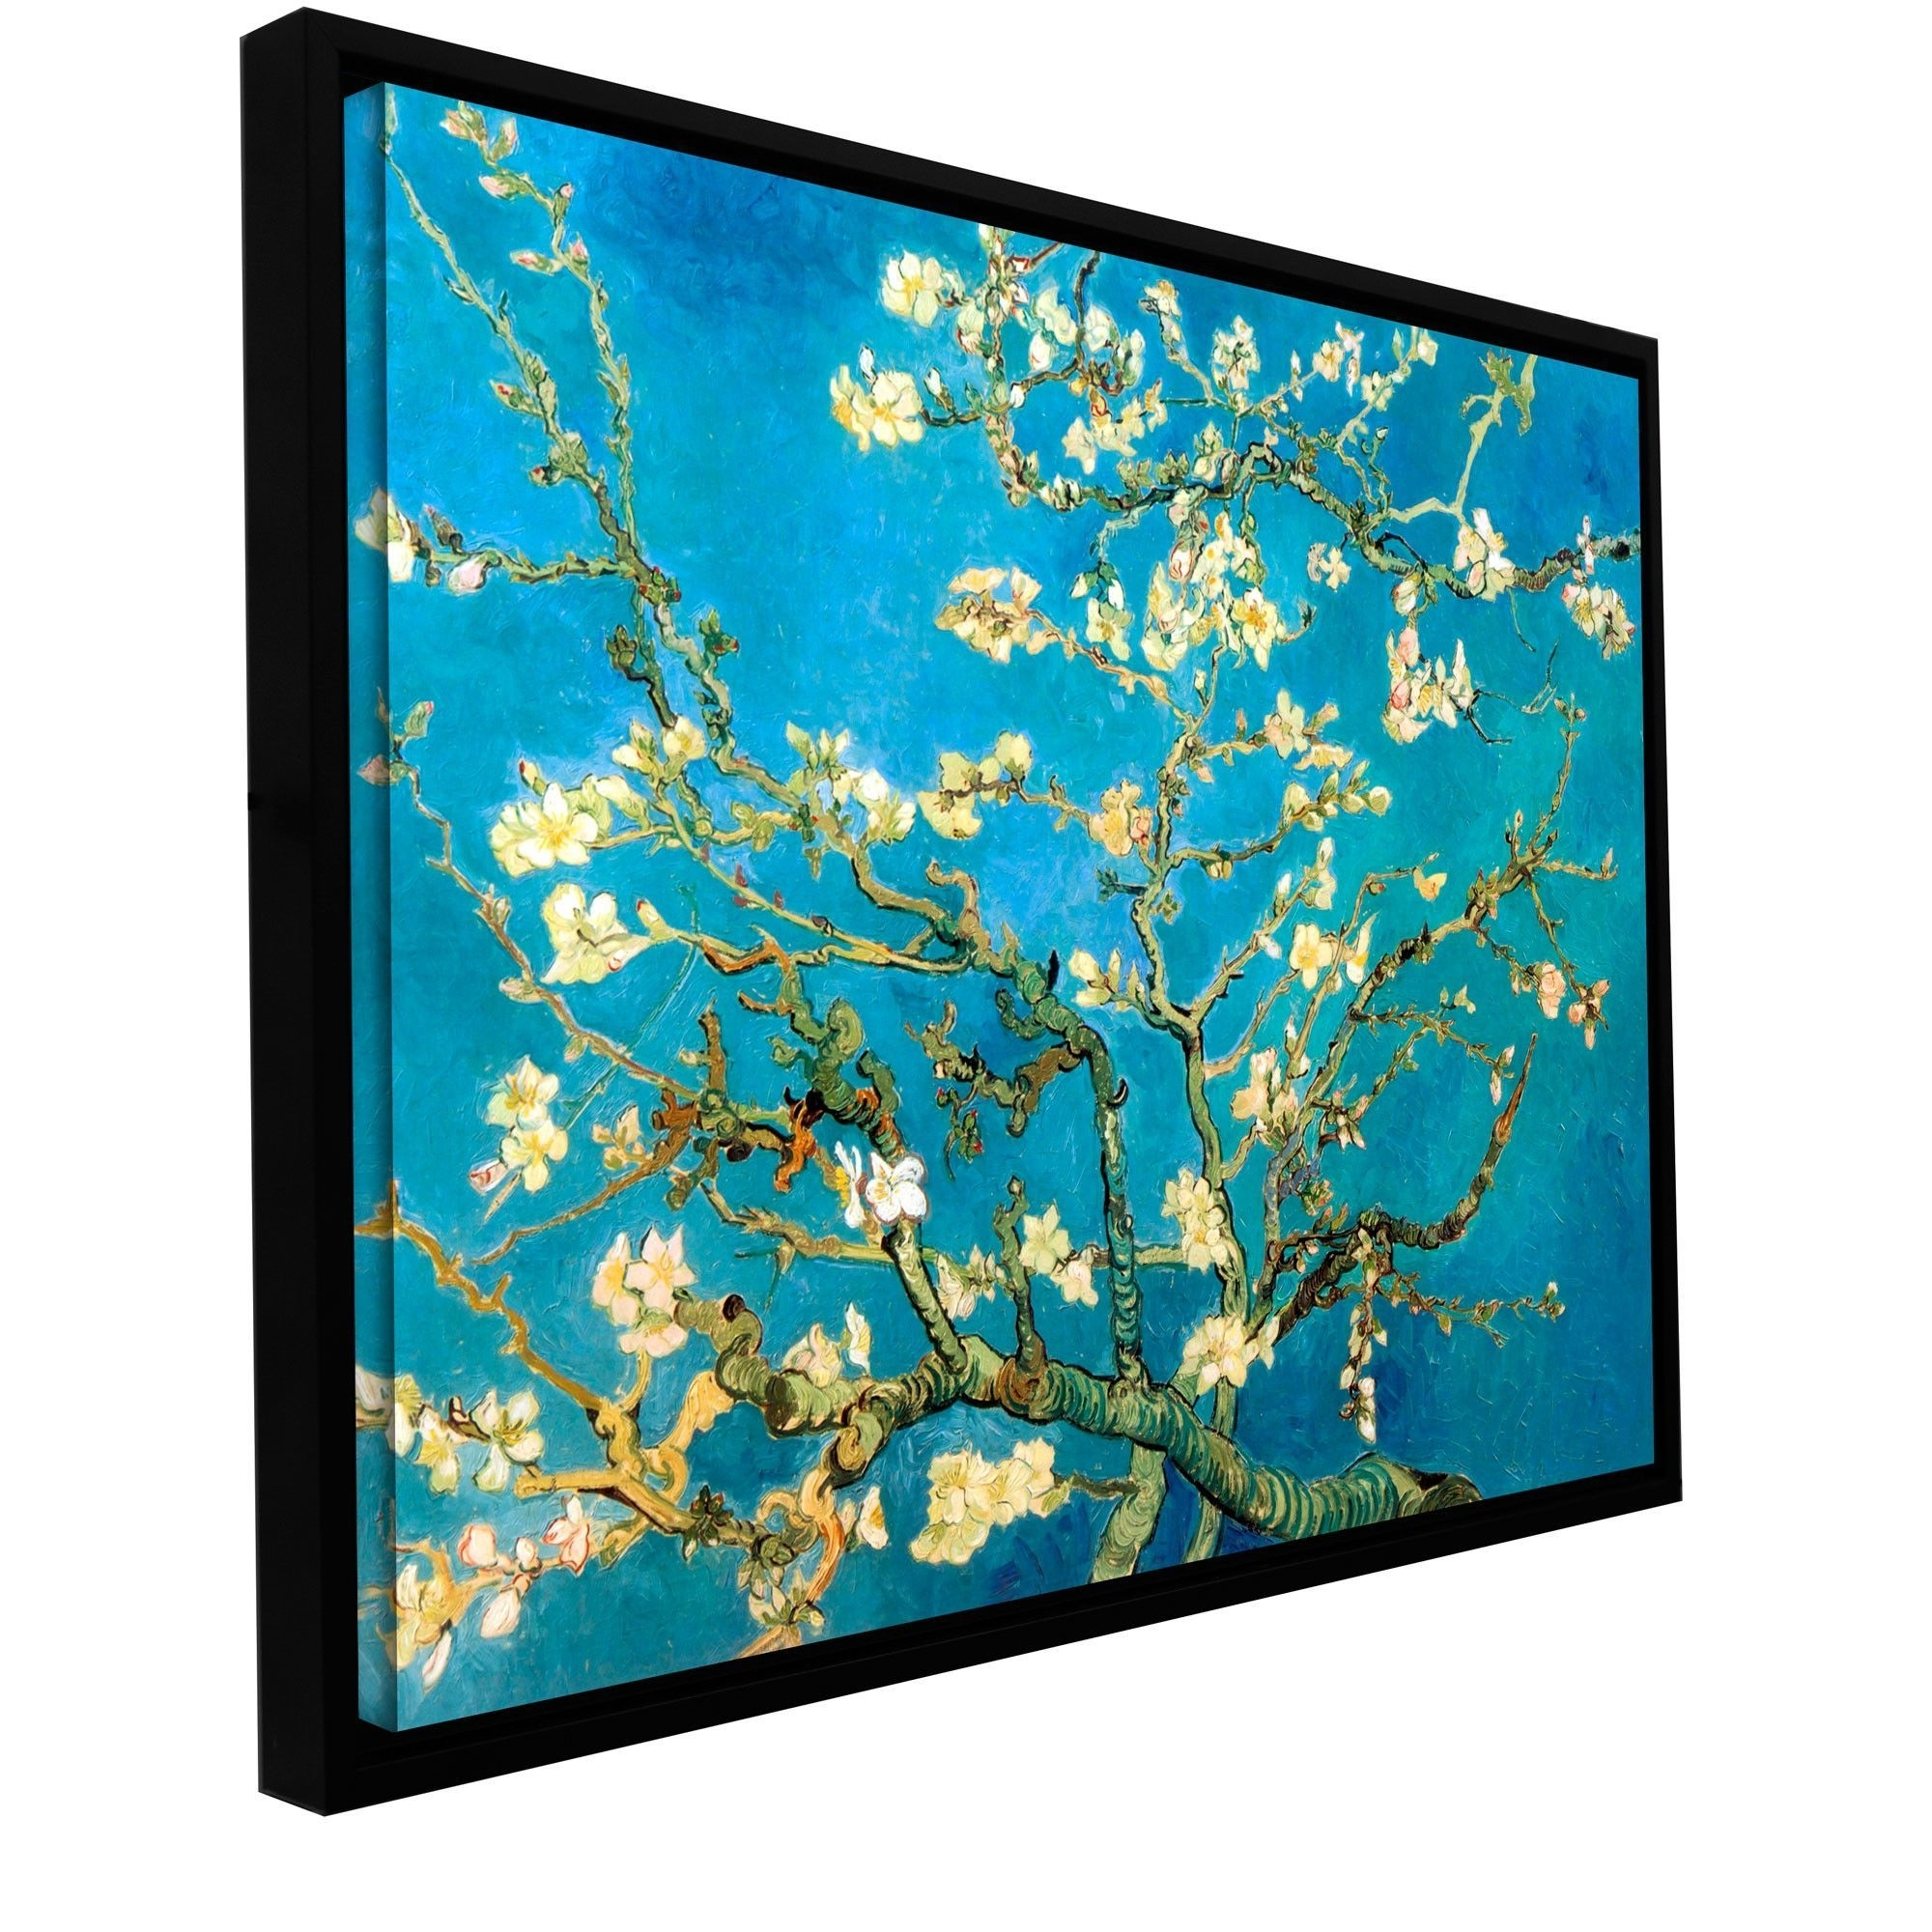 Almond Blossom'vincent Van Gogh Framed Painting Print On Pertaining To Most Up To Date Almond Blossoms Vincent Van Gogh Wall Art (View 3 of 20)